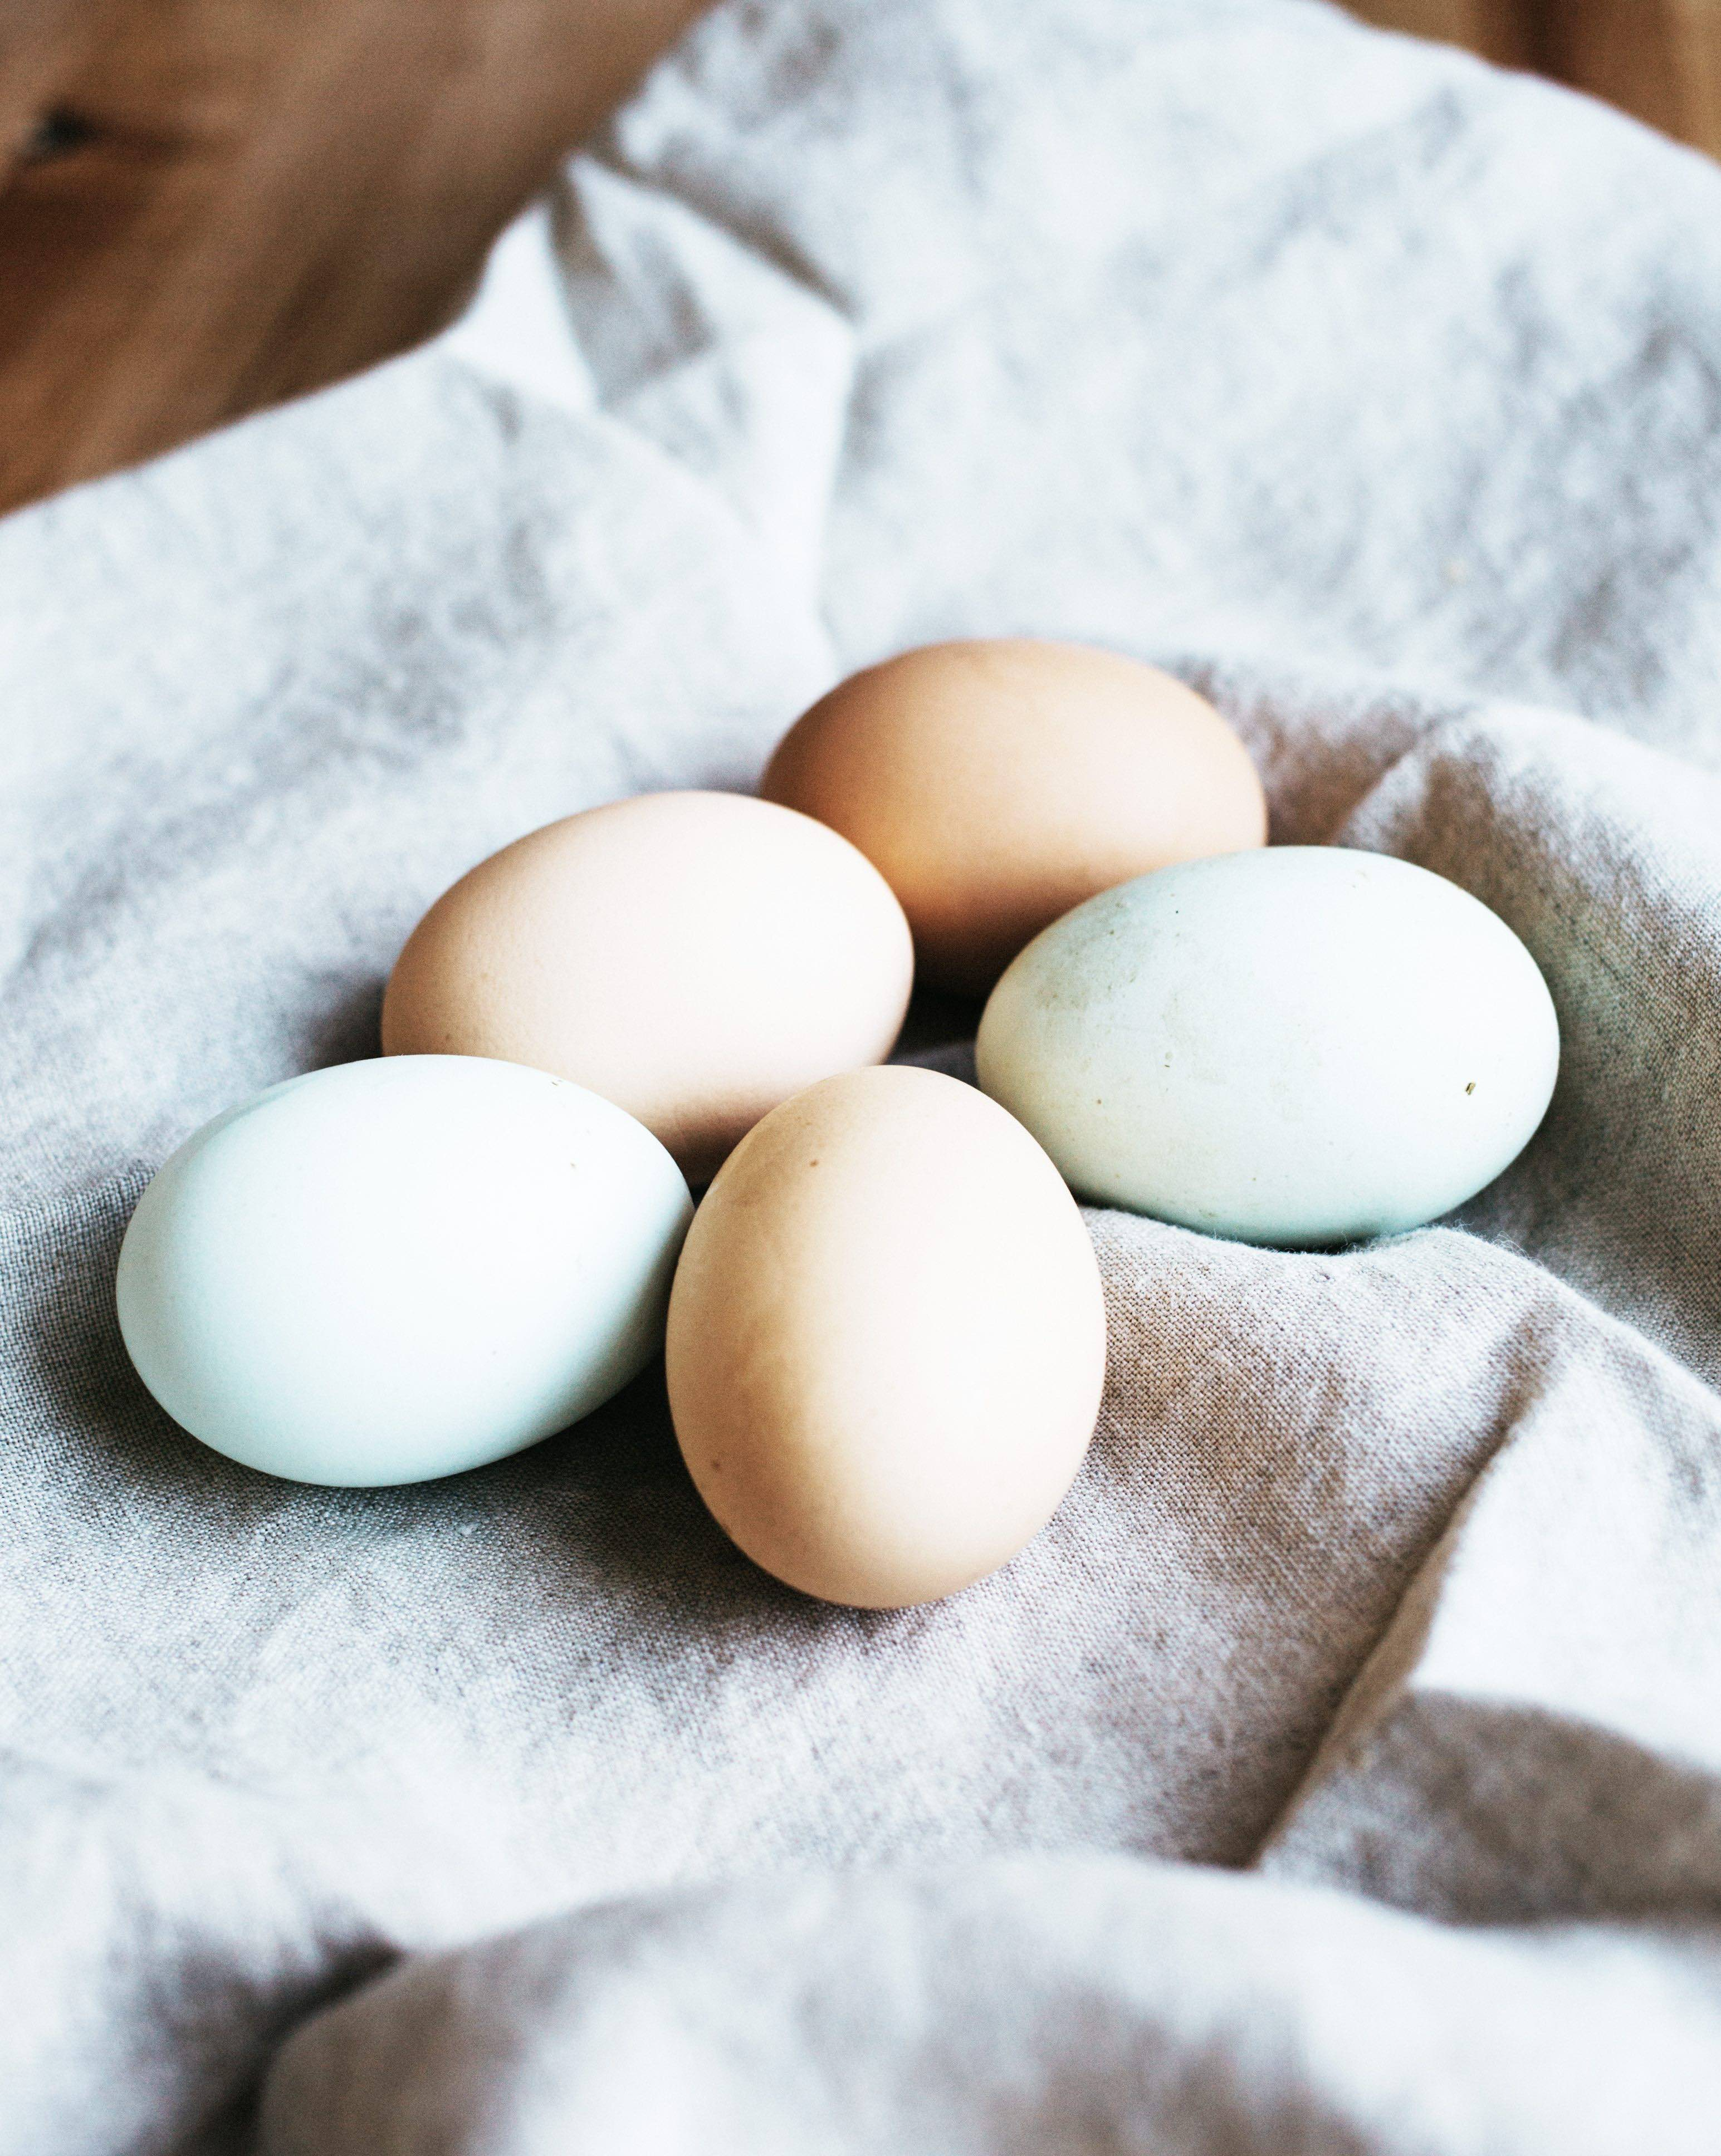 LightWorkers All-Natural Dye Easter Eggs.